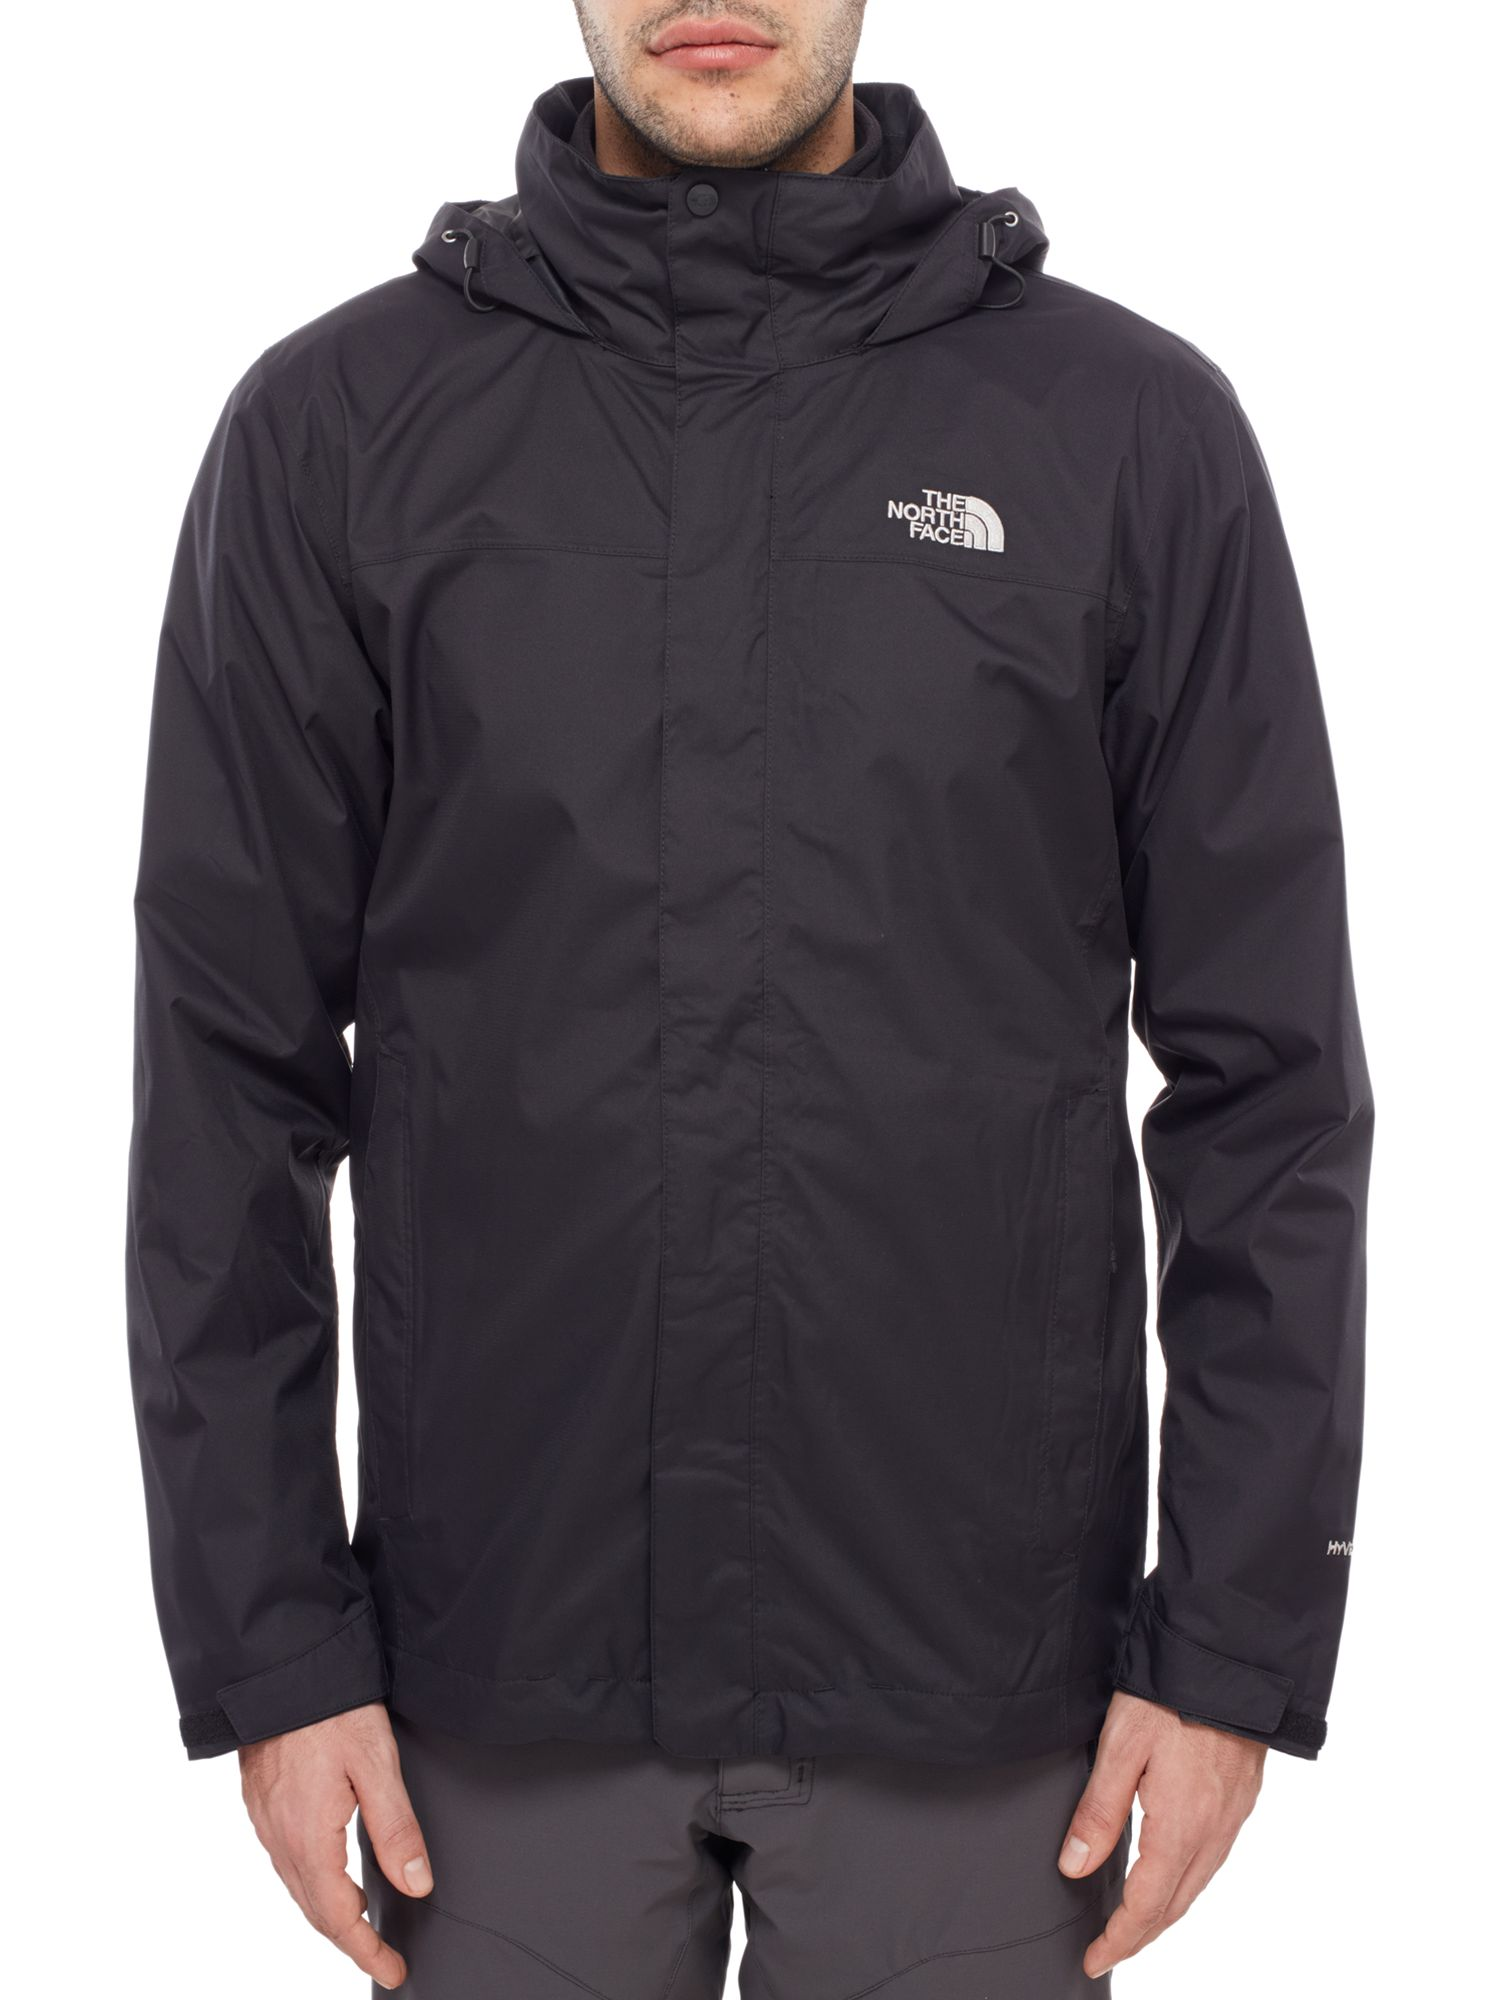 The North Face The North Face Evolve II Triclimate 3-in-1 Waterproof Men's Jacket, Black